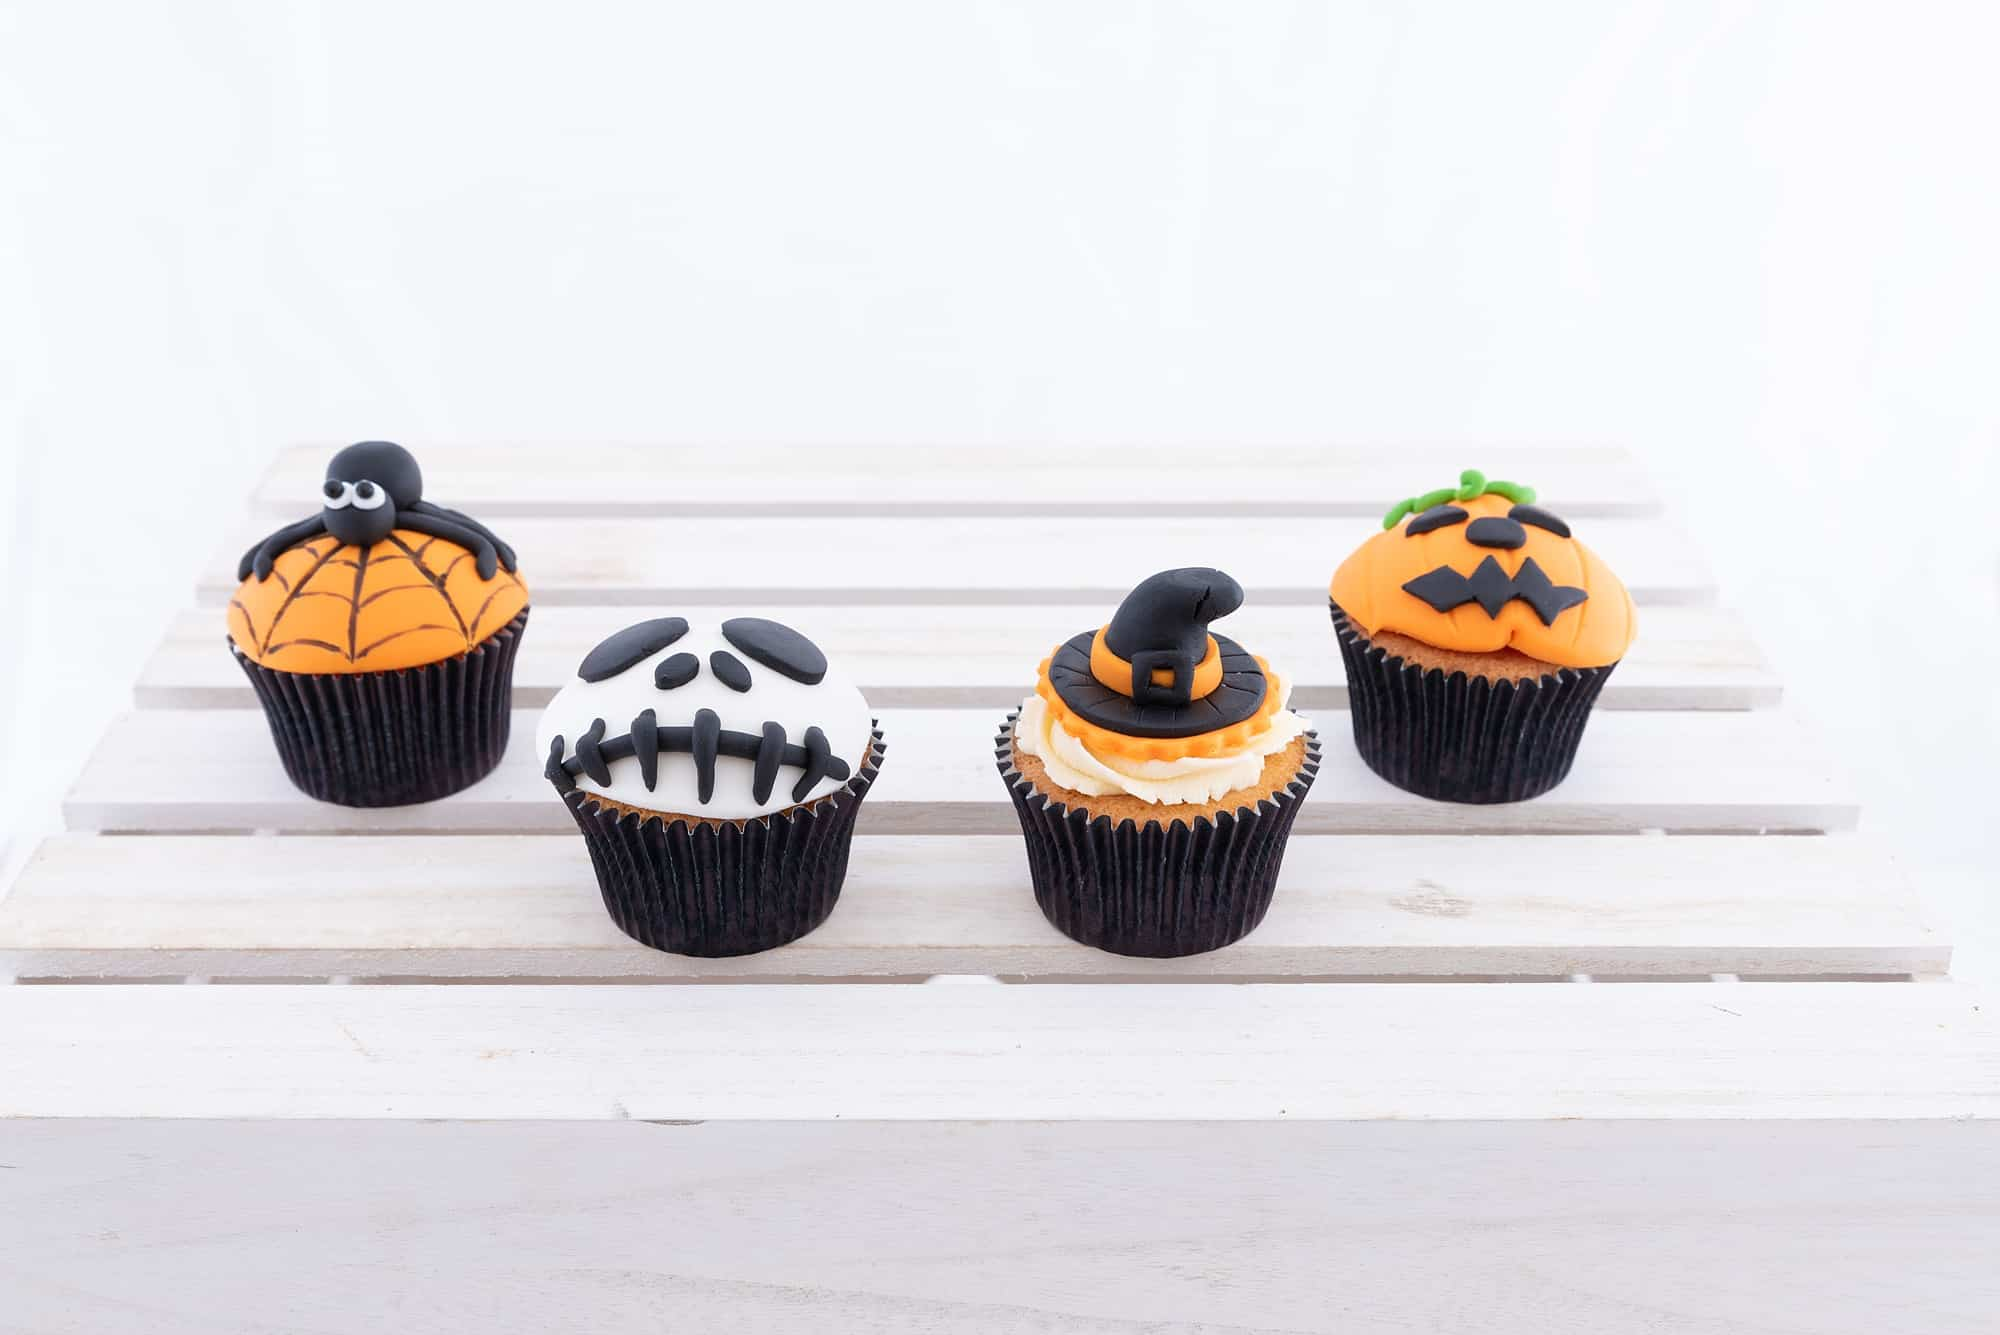 www.blossombakery.co.uk products i have photographed - Halloween cakes